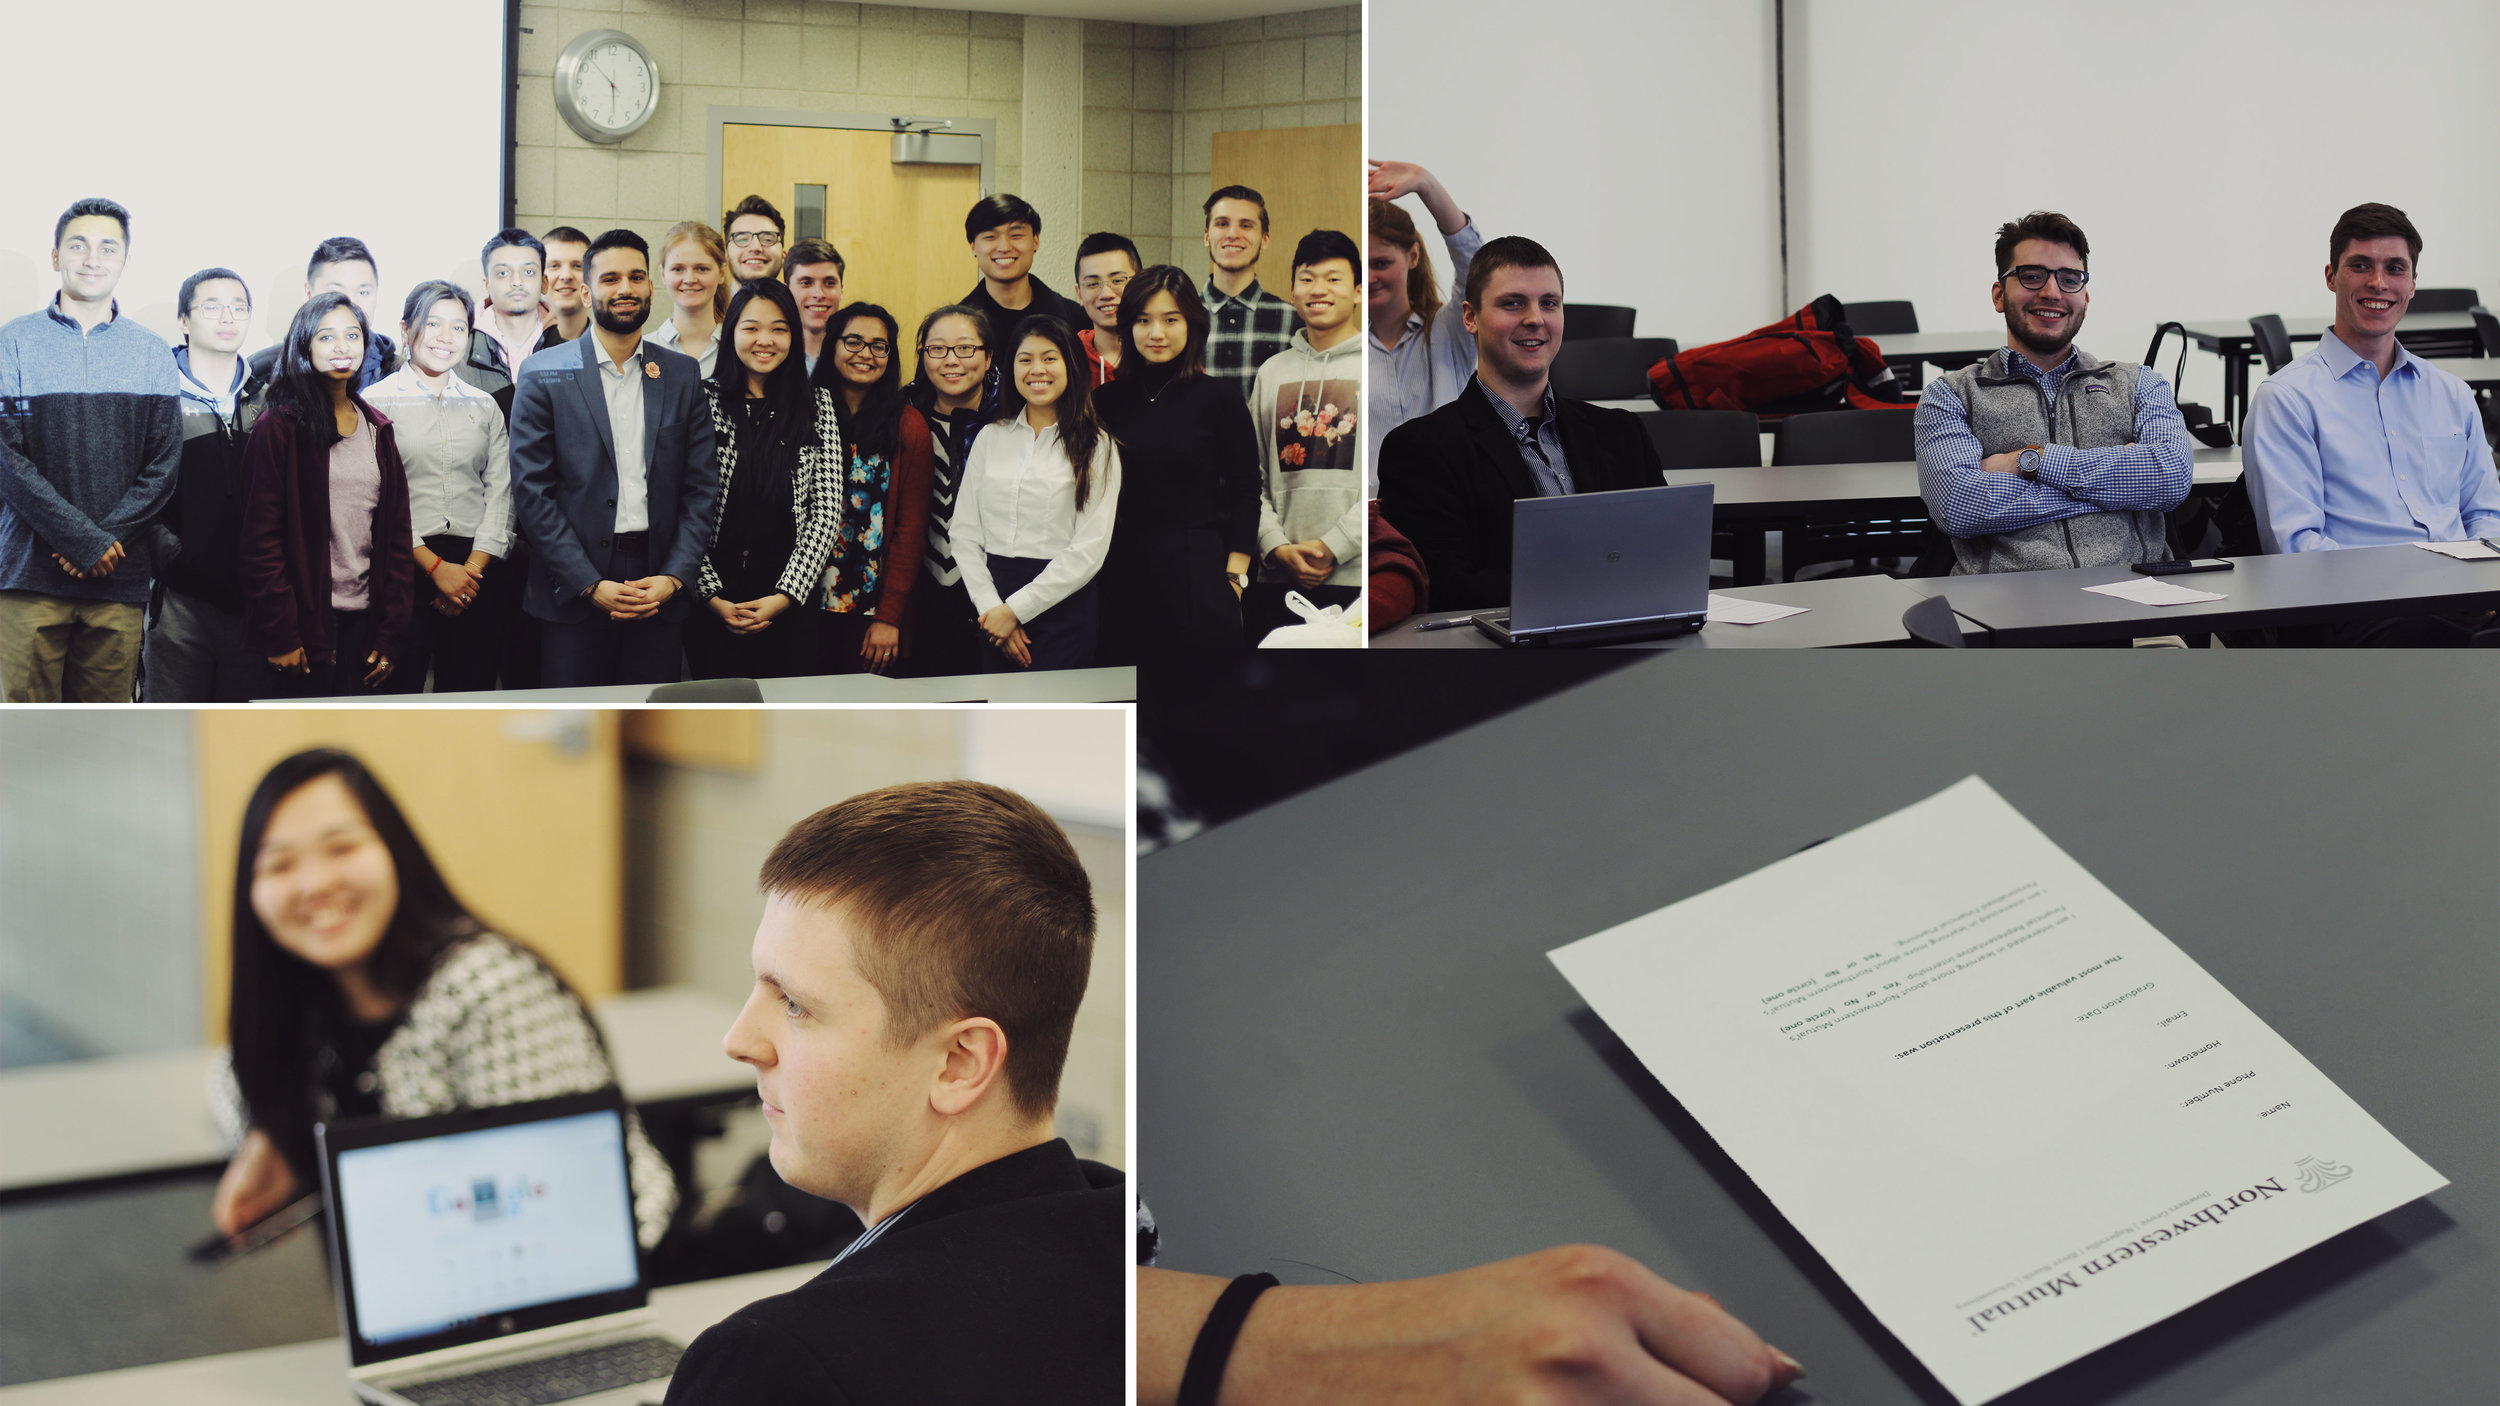 WEEKLY WORKSHOPS - AKPsi hosts weekly workshops to help Brothers improve their professional skills and become better business leaders. Northwestern Mutual came in to assist Brothers in their own financial planning!